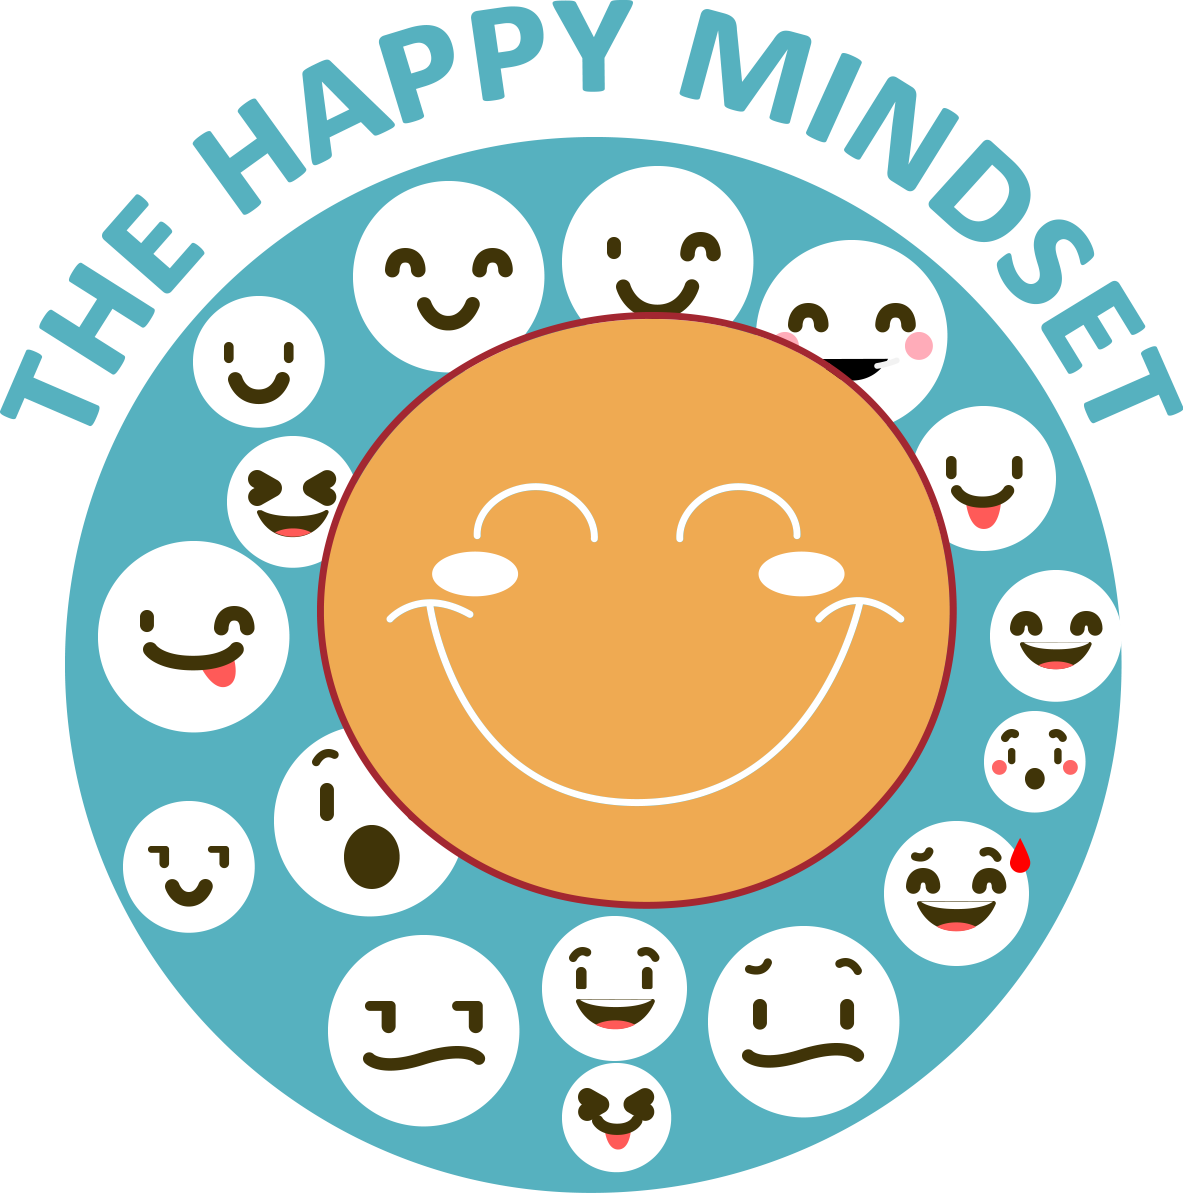 The Happy Mindset